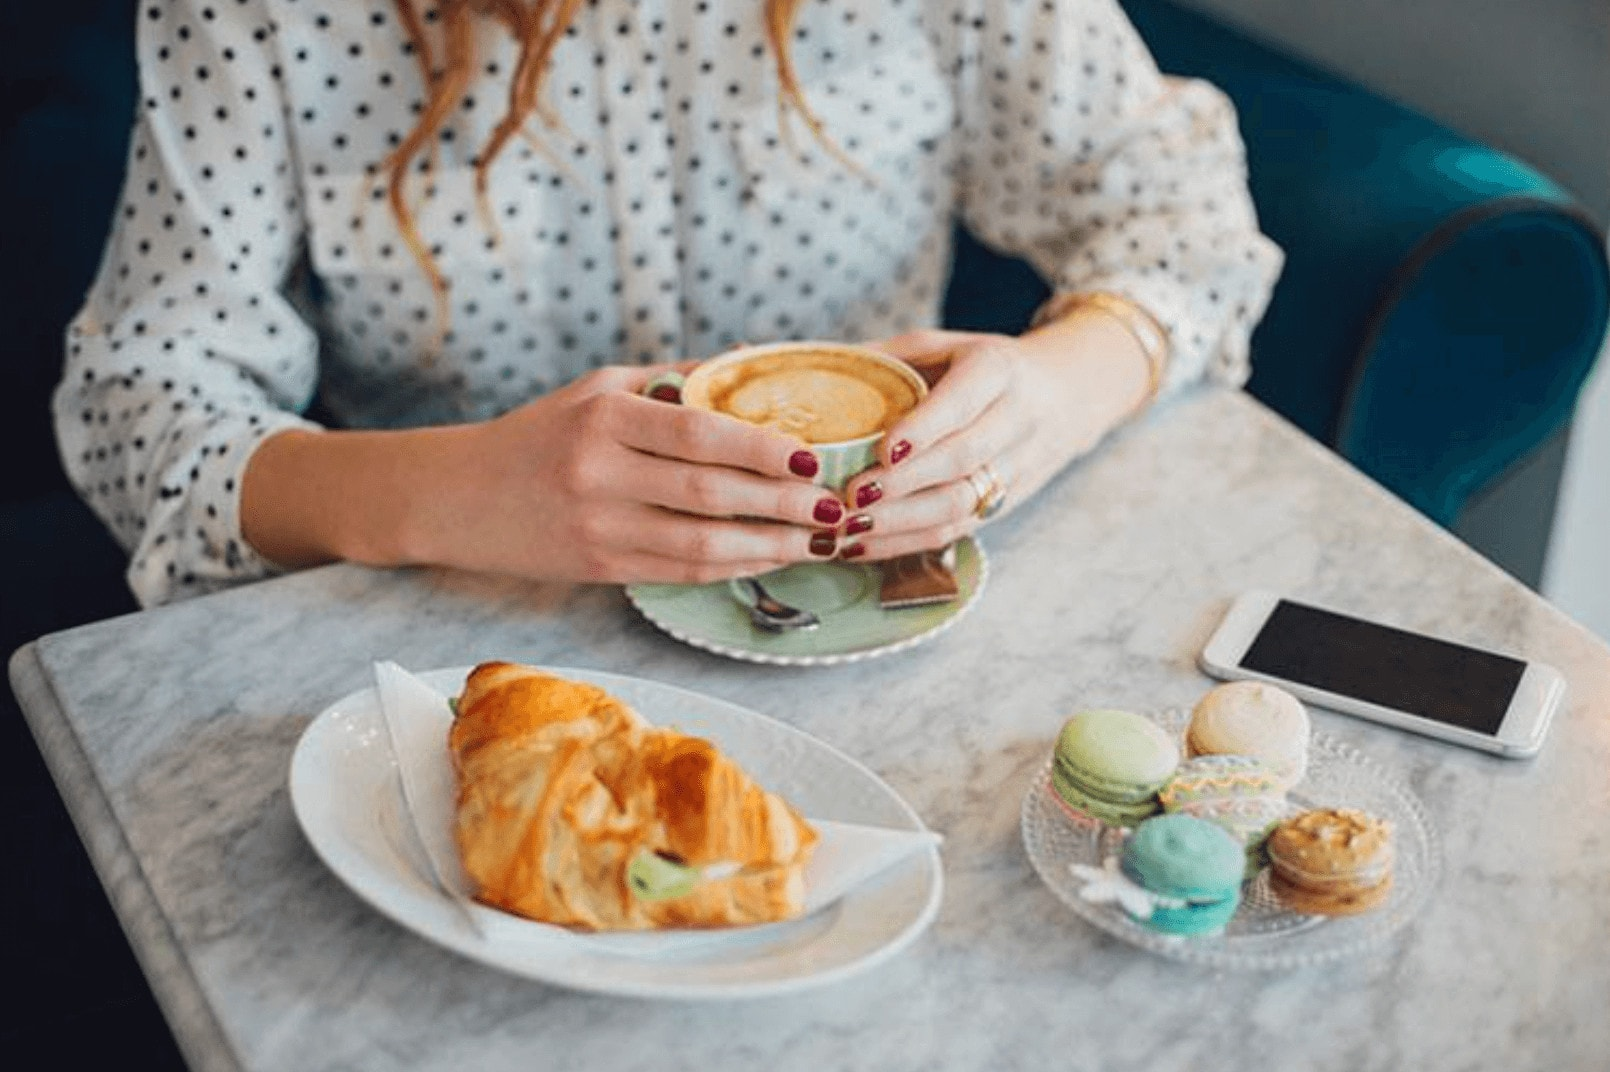 WOMAN DRINKING COFFEE, FRENCH MACARONS, CROISSANT